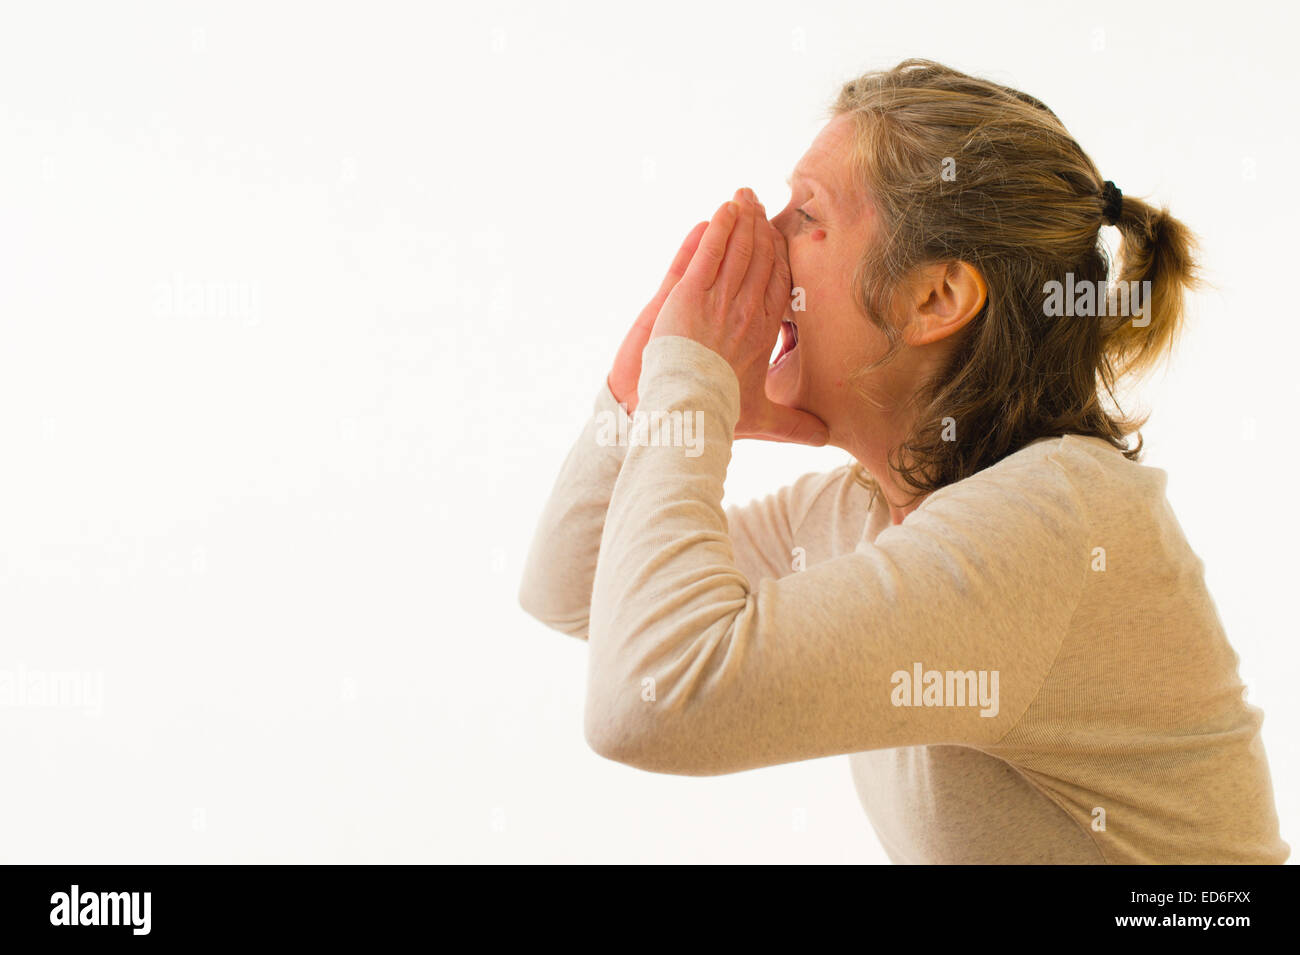 A forty year old caucasian woman shouting yelling through her cupped hands against a white background. UK - Stock Image